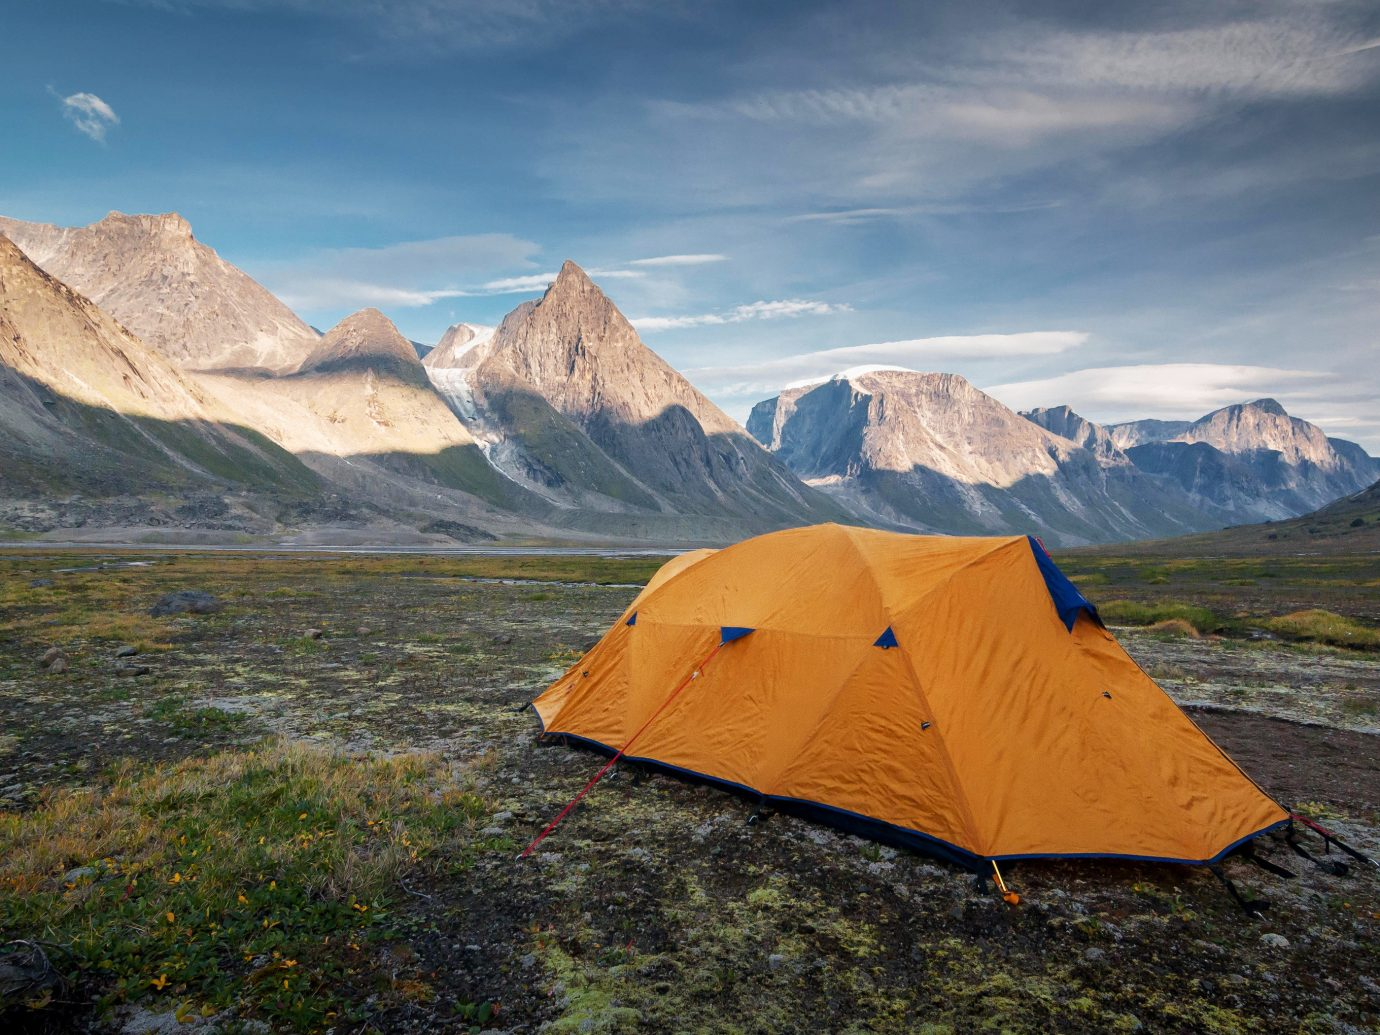 National Parks Outdoors + Adventure Travel Tips Trip Ideas mountain sky outdoor outdoor object tent Nature wilderness mountainous landforms ecosystem fell mountain range highland national park tundra morning terrain landscape hill ecoregion cloud Adventure rock mount scenery valley ridge glacial landform elevation grassland plateau summit Lake accessory